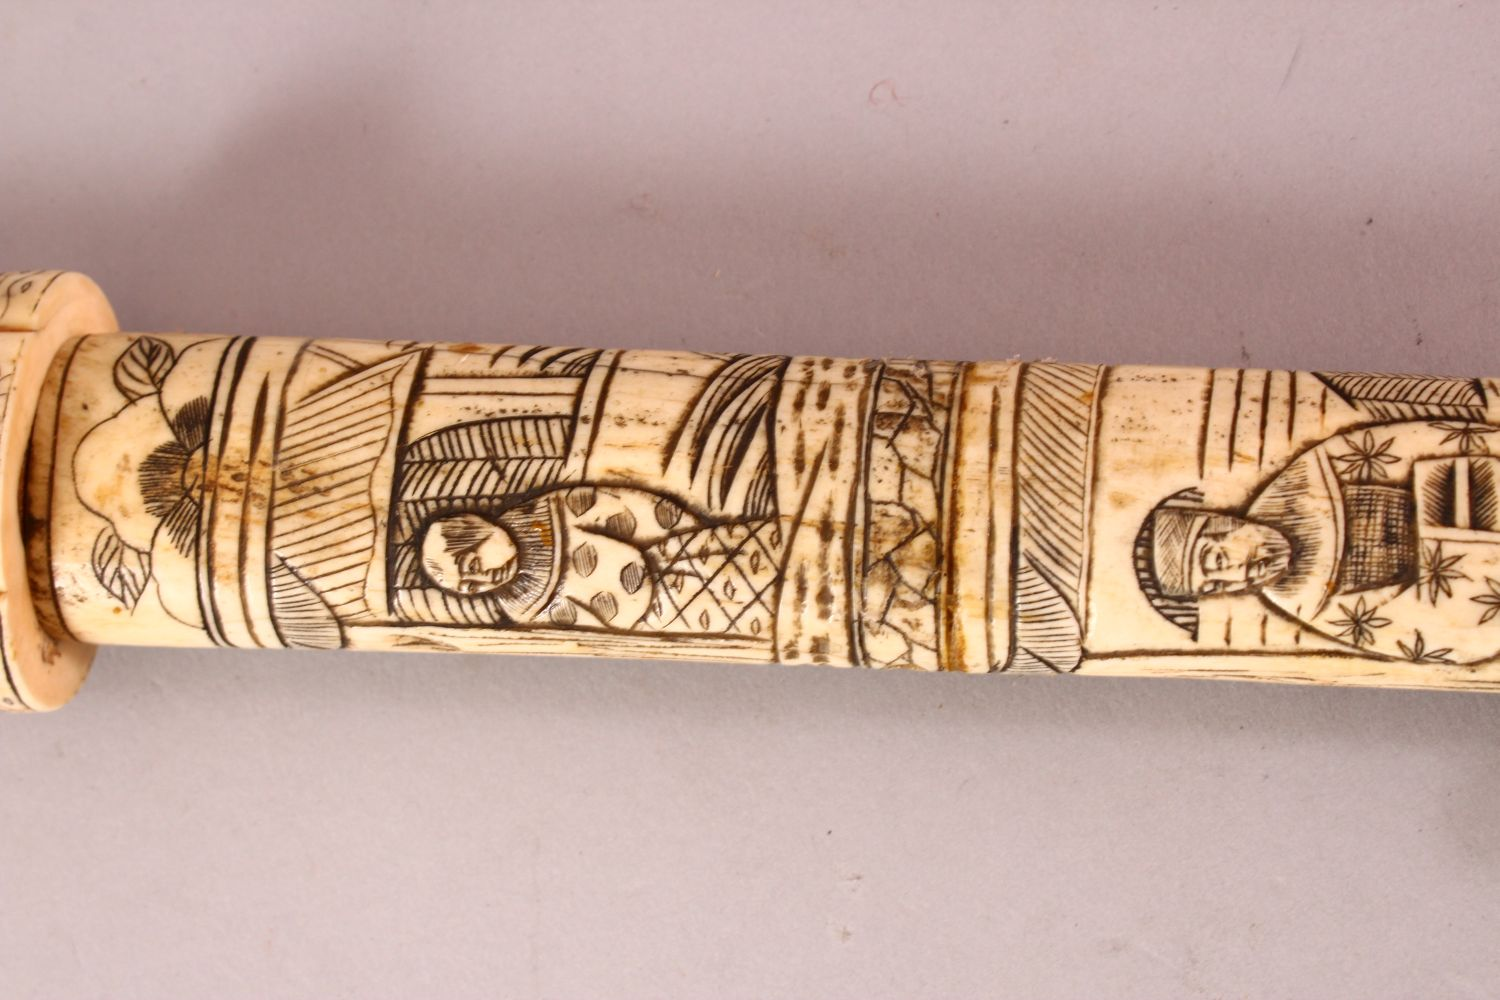 A JAPANESE MEIJI PERIOD SECTIONAL CARVED IVORY SWORD, carved with scenes of figures (AF) 85cm - Image 5 of 7